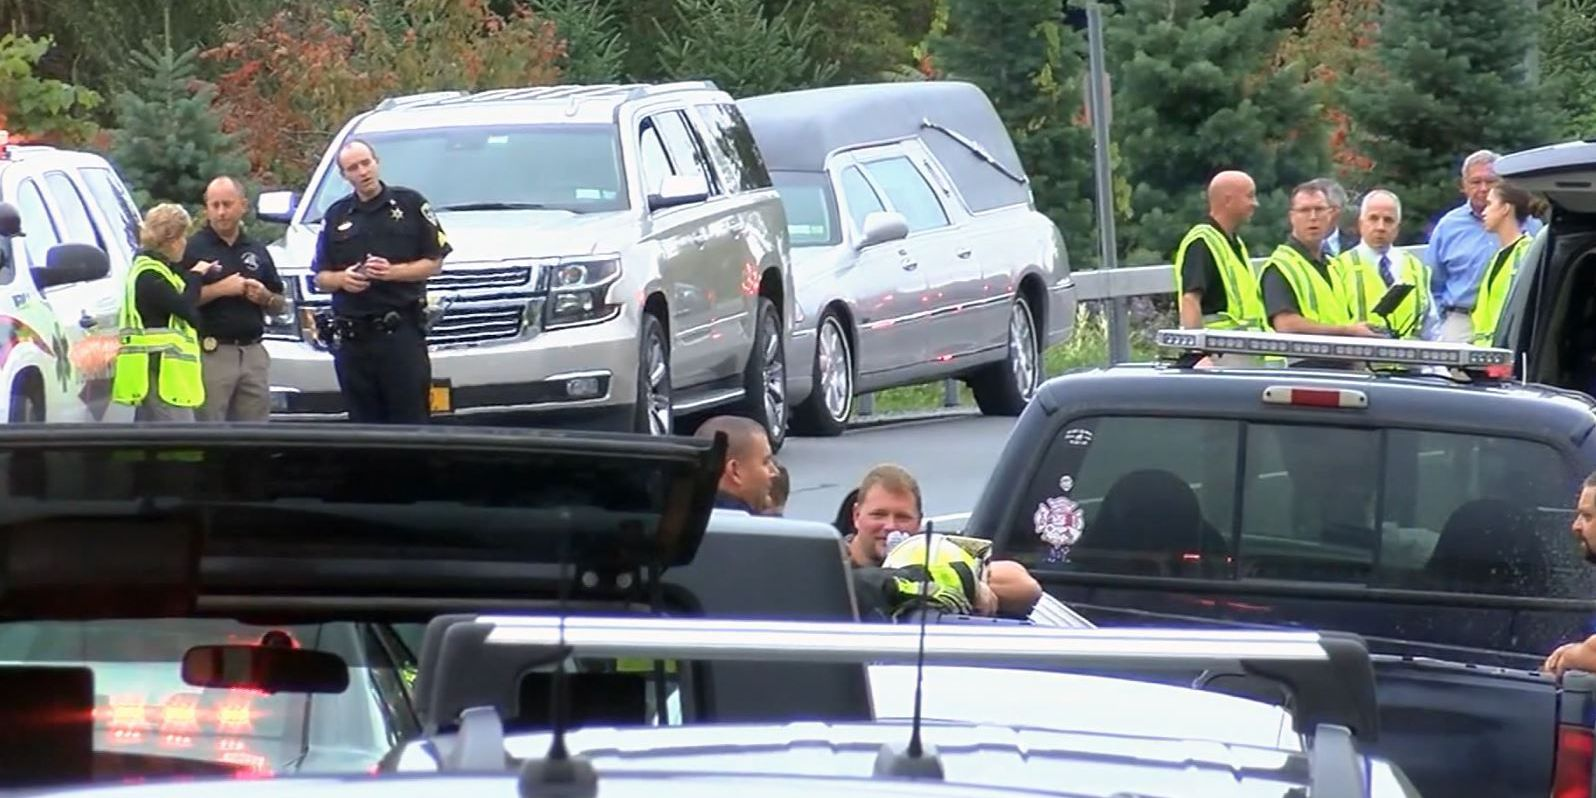 NY limo accident victims died of 'multiple severe traumatic blunt force injuries,' autopsy says